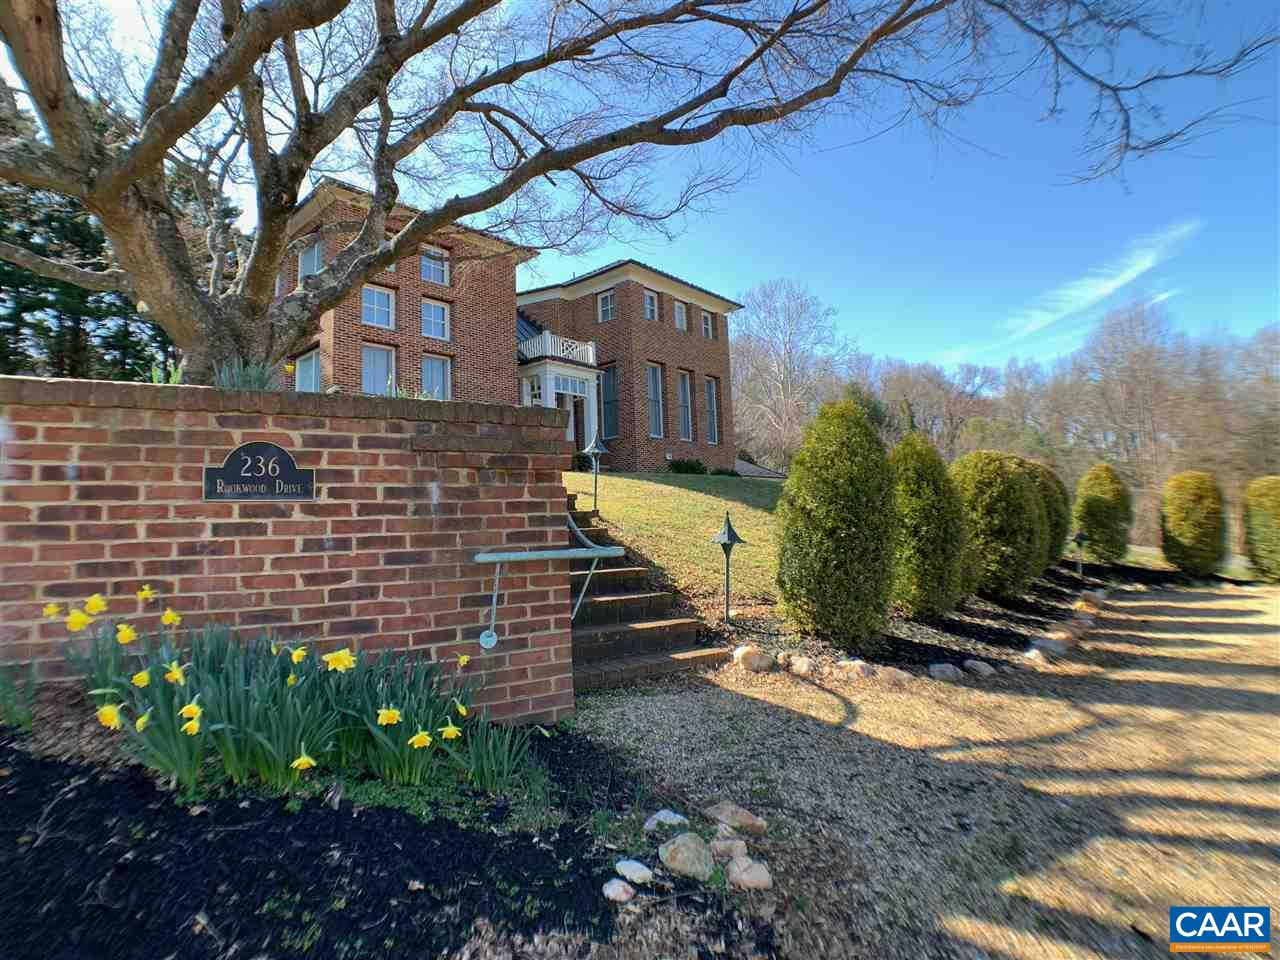 236 Rookwood Dr, Charlottesville